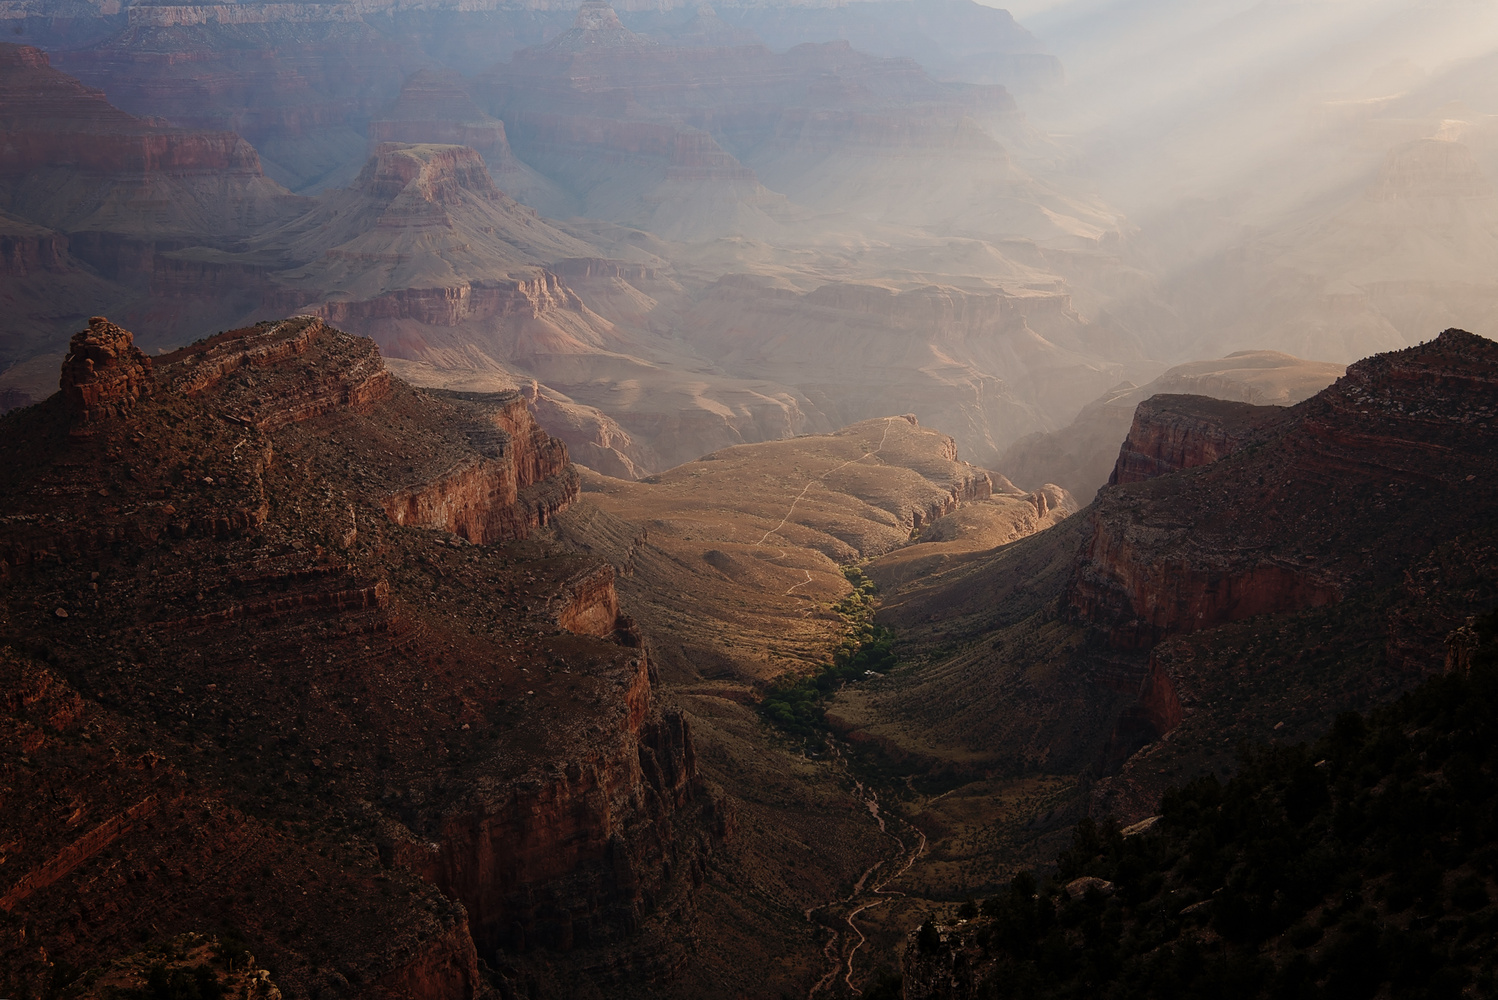 Grand Canyon at Dawn by Margie Mackrell